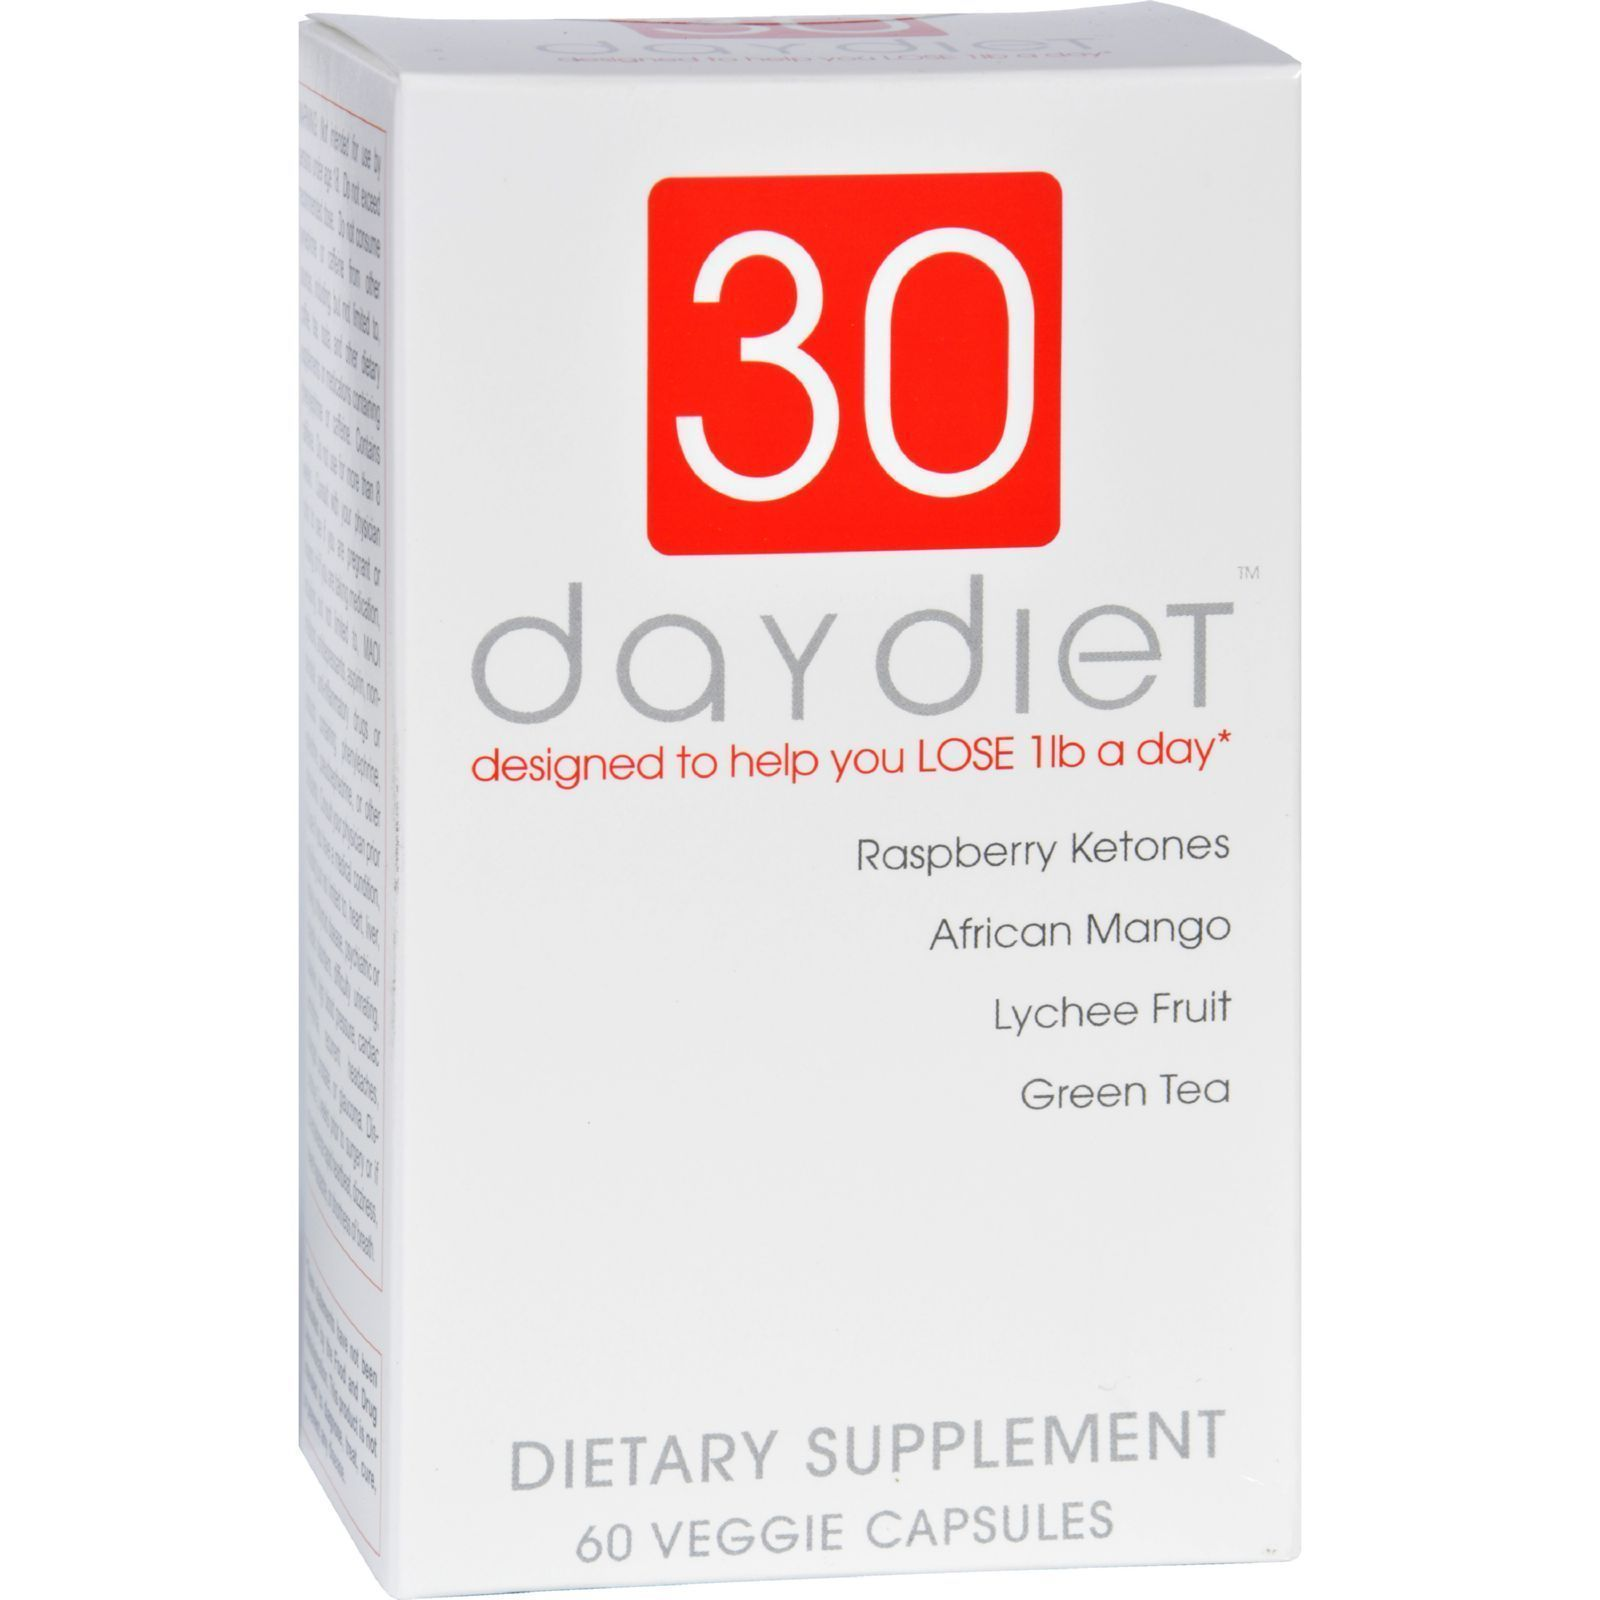 Creative Bioscience 30 Day Diet - 60 Capsules  #vitamins #NuVitaherb #goals #health #nutrition #supp...